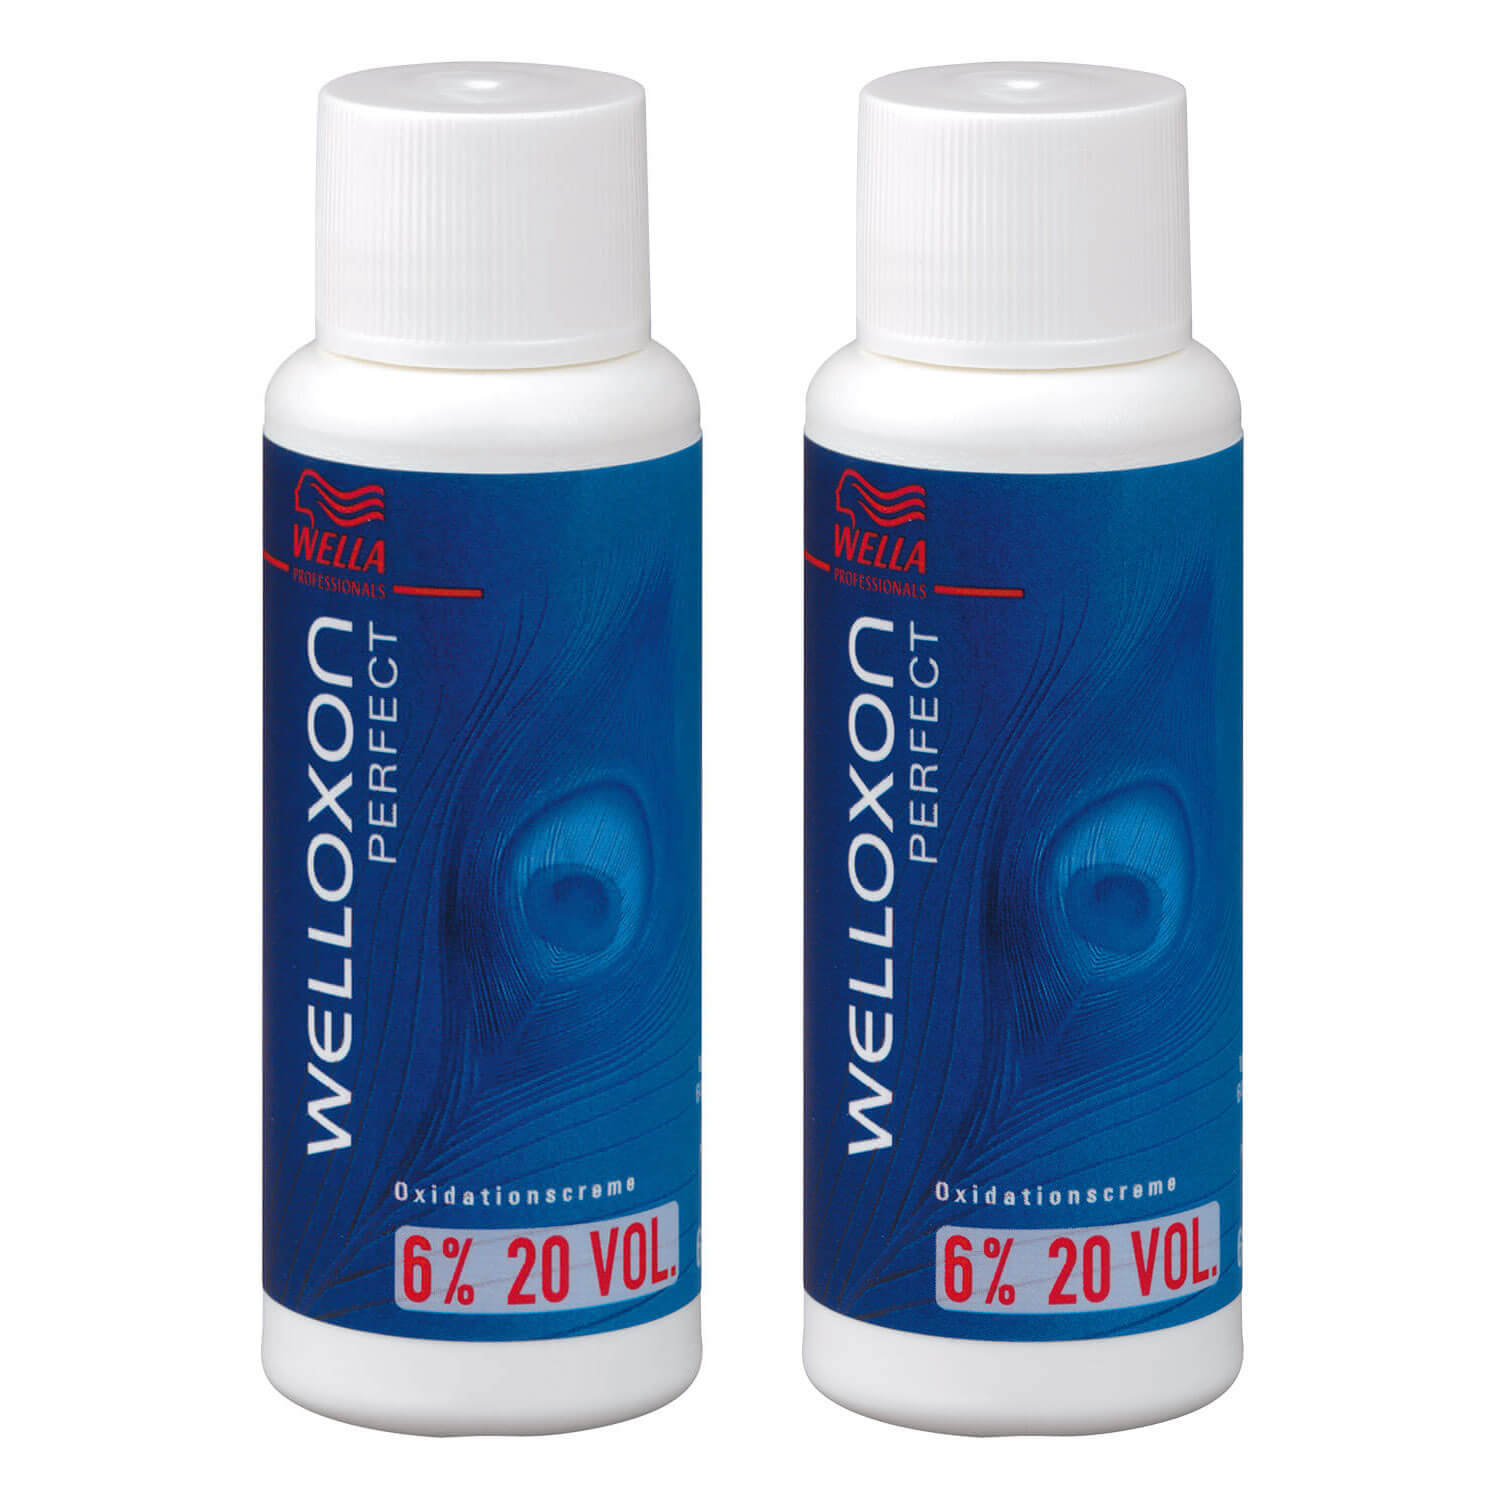 Welloxon - Perfect Entwickler 6% 20 Vol. Special